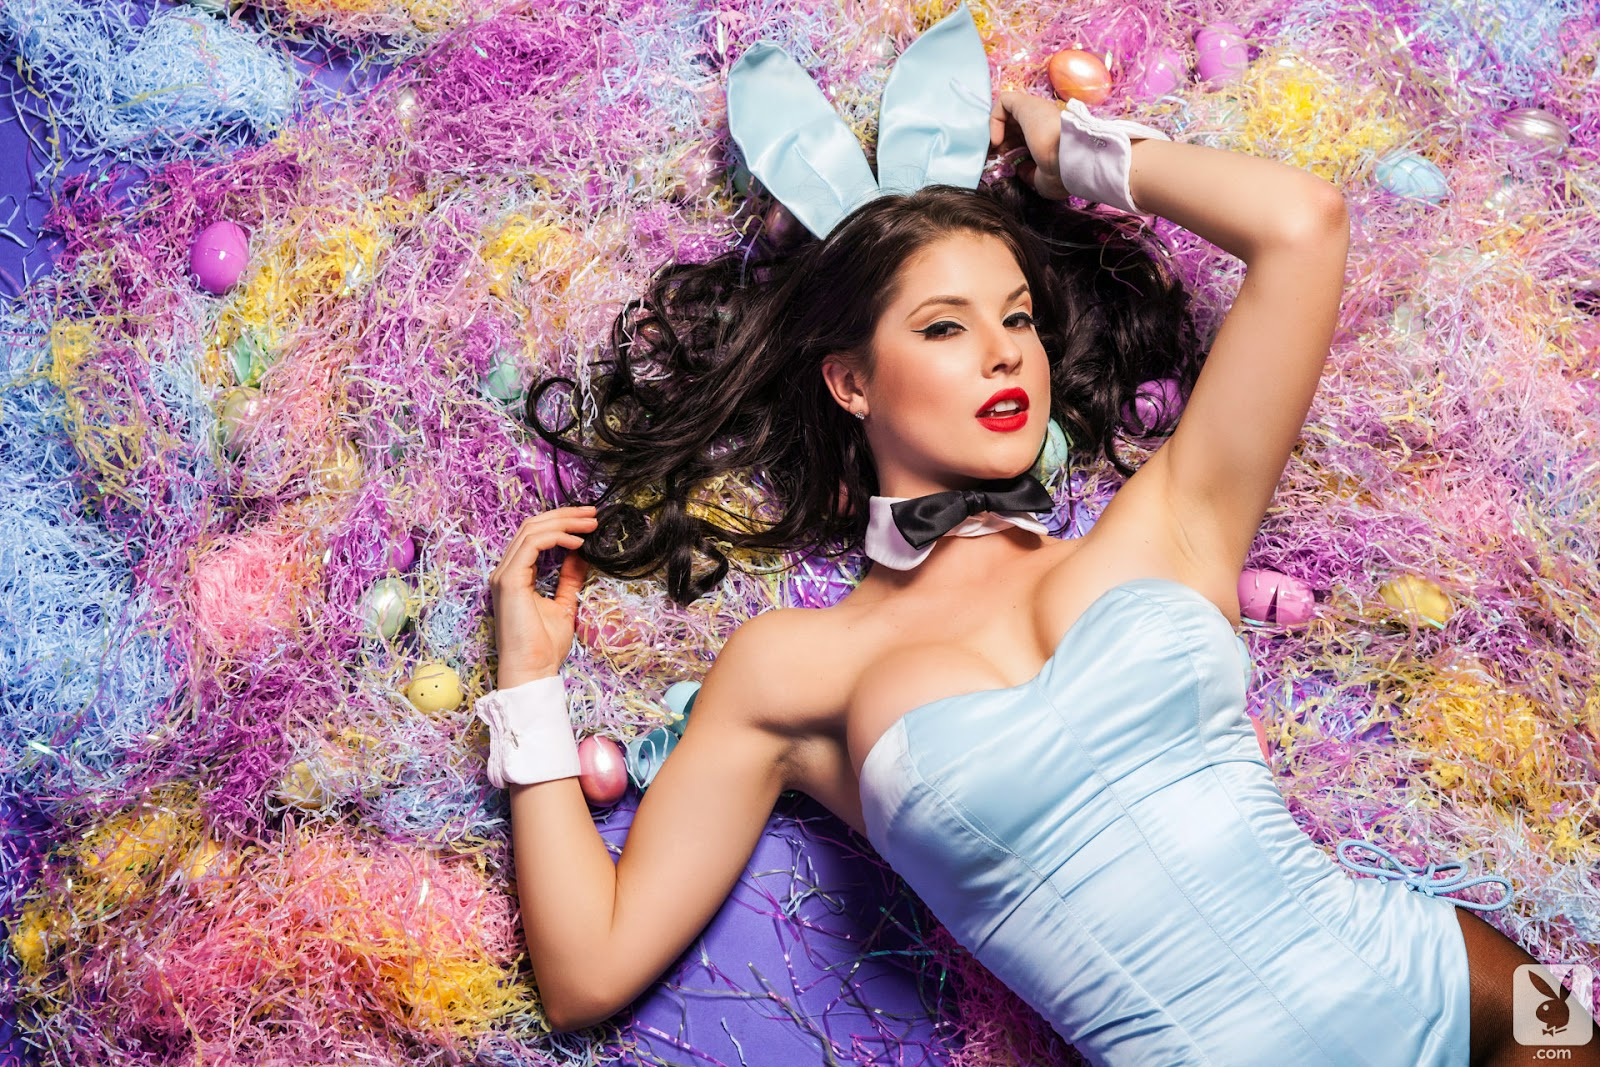 amanda cerny the naughty bunny hot girls wallpaper